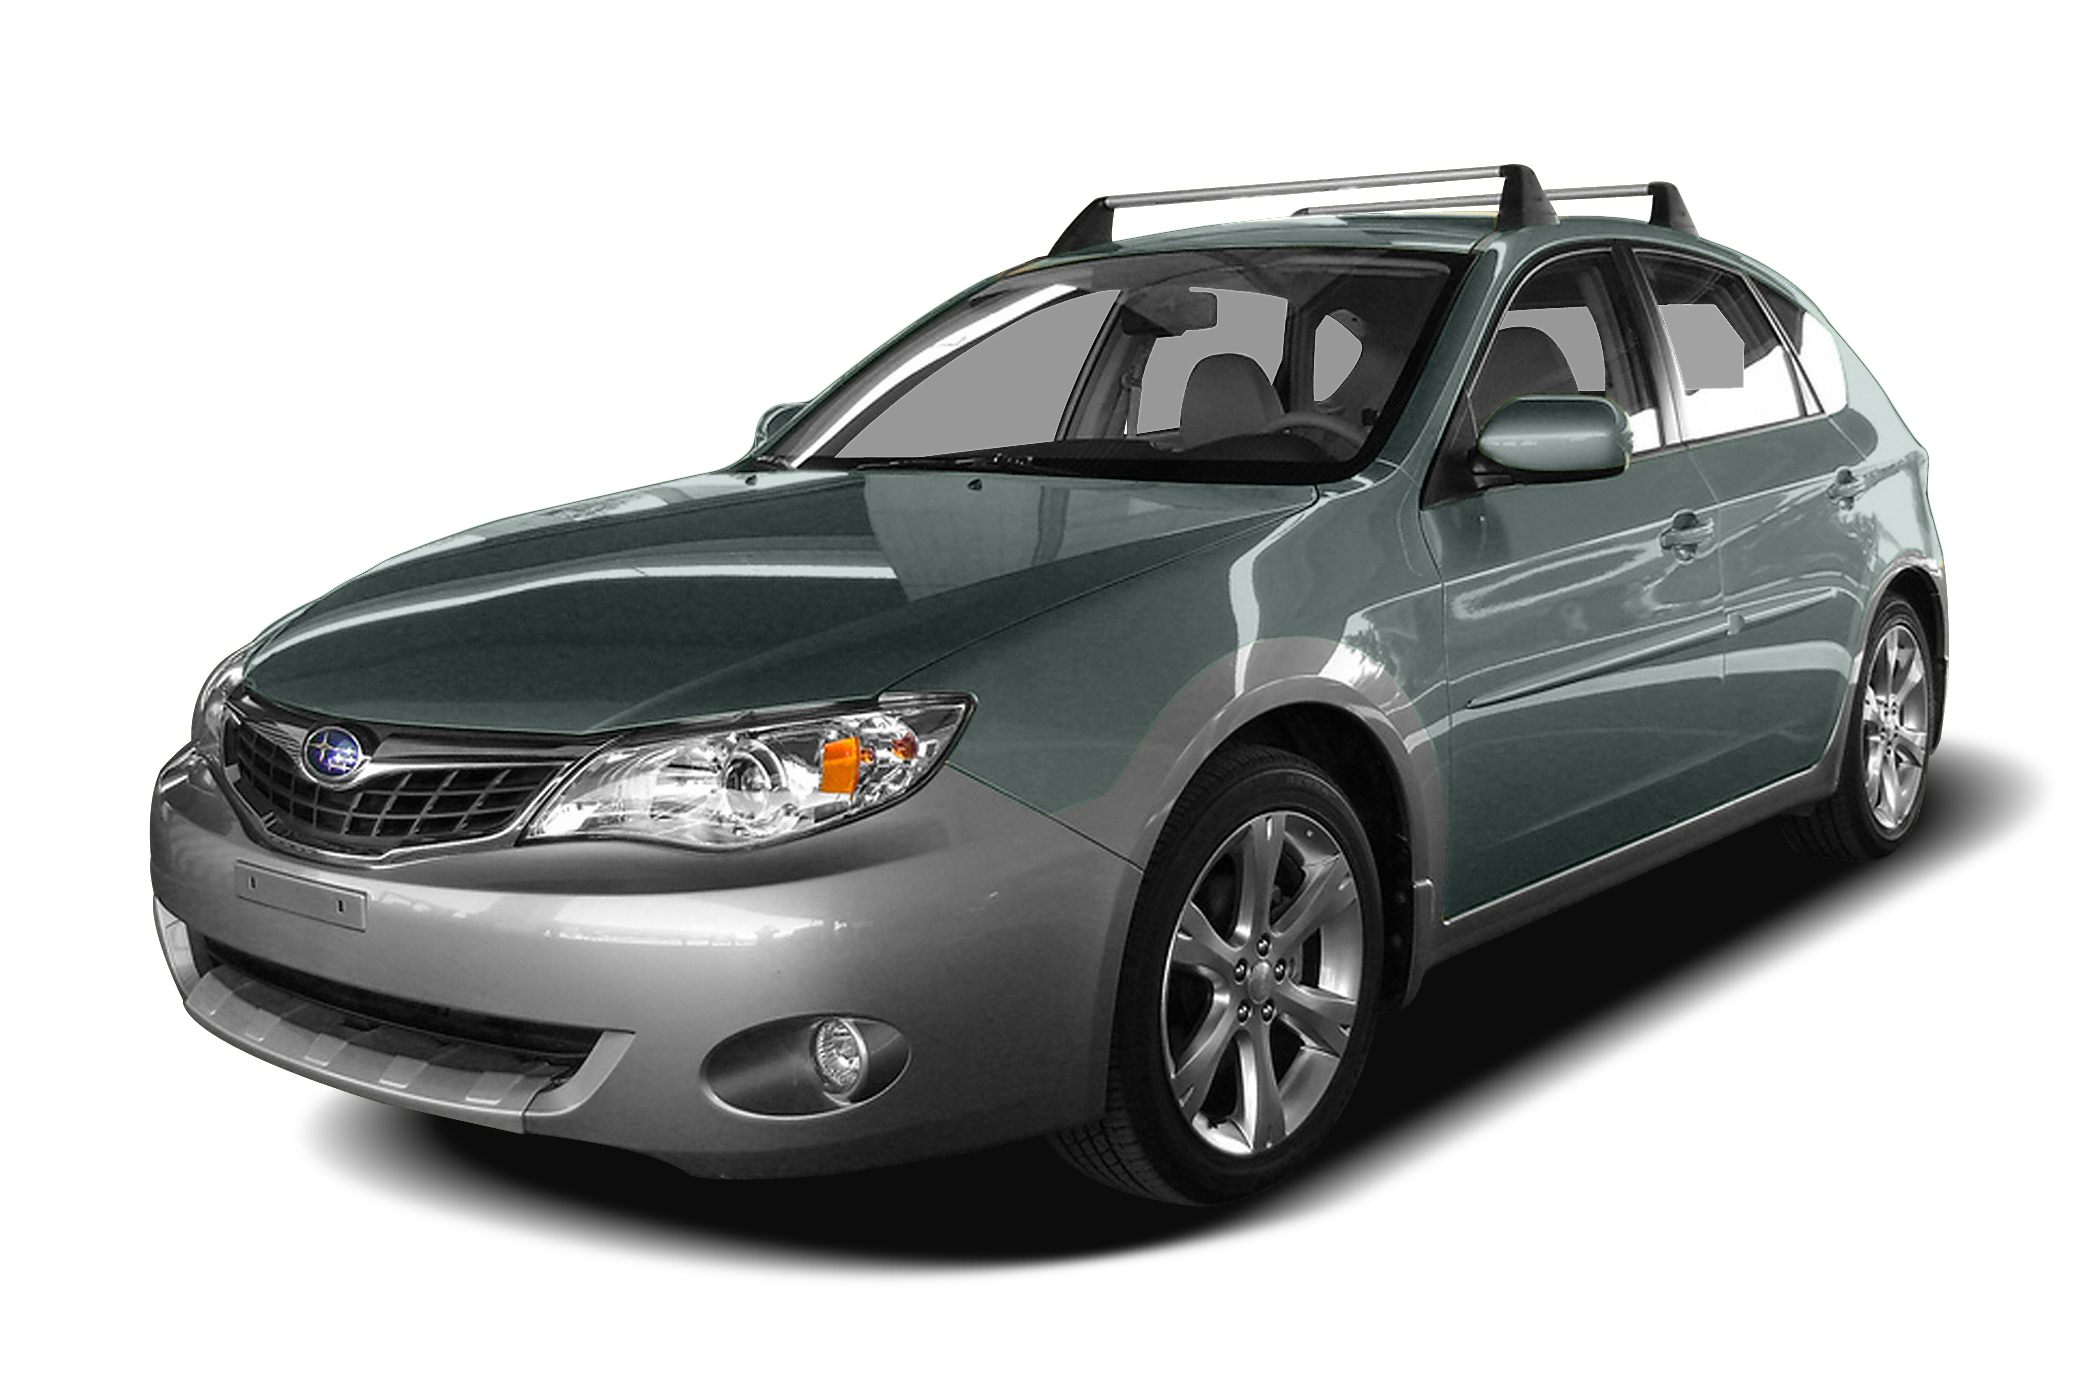 2009 Subaru Impreza Outback Sport